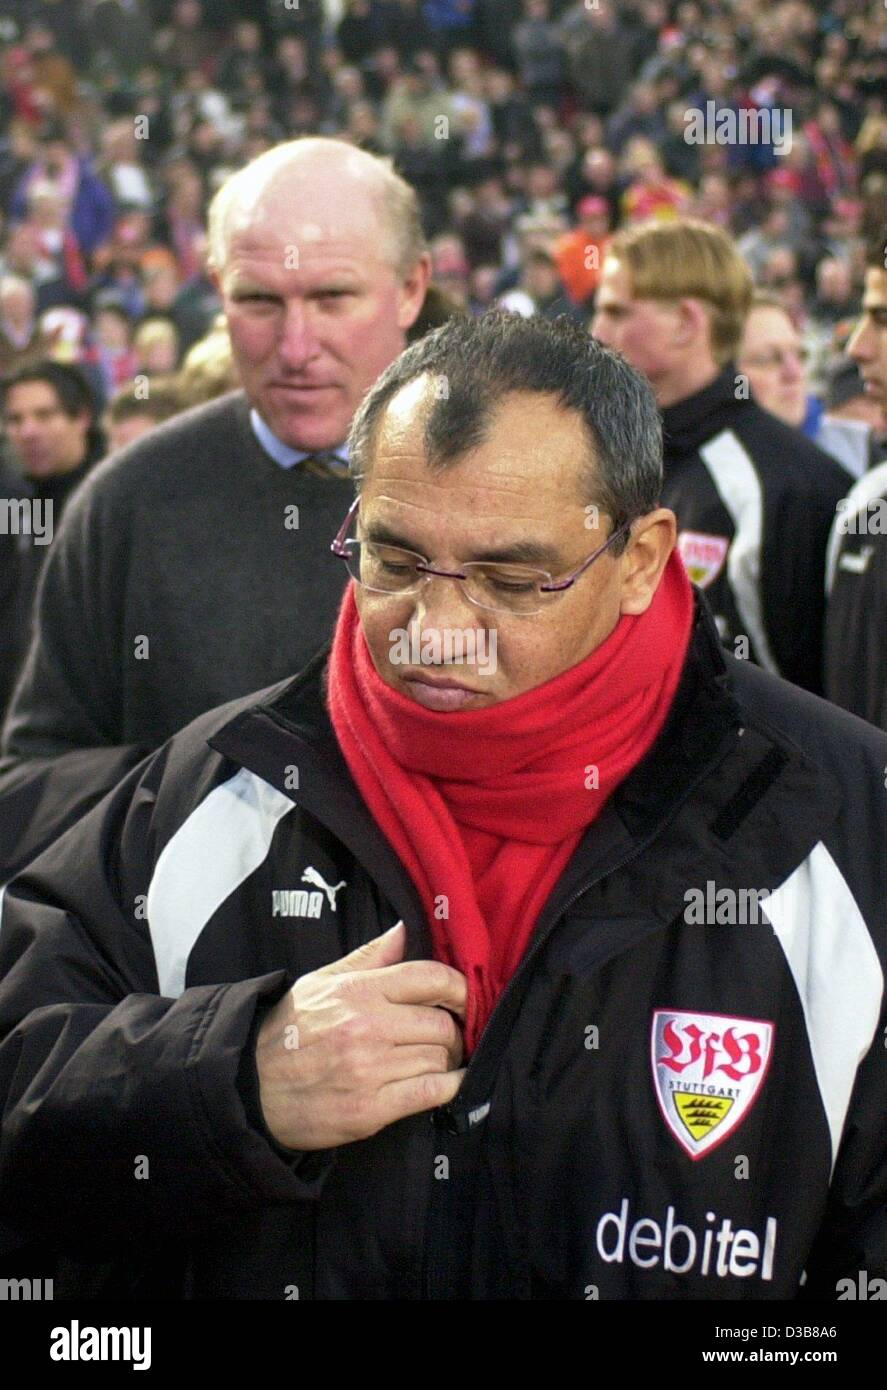 The trainer of the VfB Stuttgart Felix Magath (foreground) enters the Gottfried Daimler stadium shortly before the - Stock Image